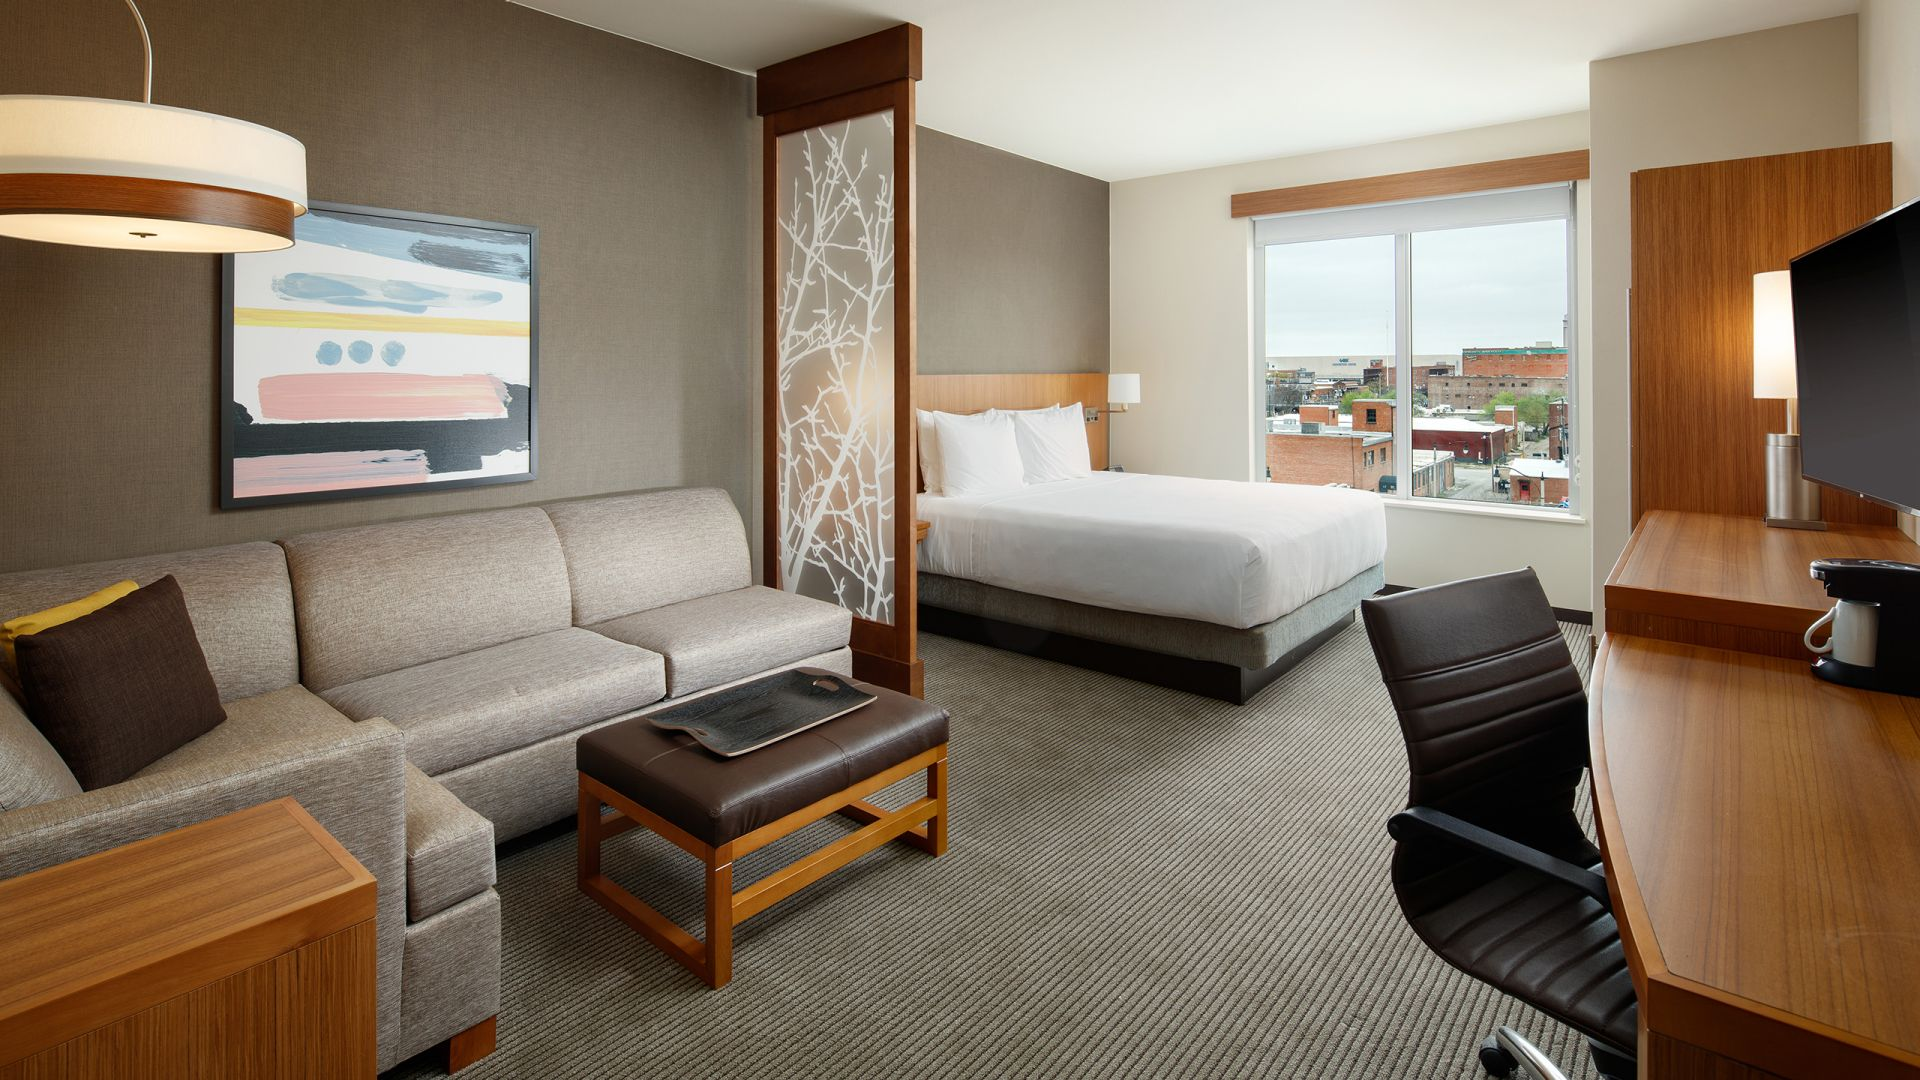 Hyatt Place Oklahoma City / Bricktown – King Room View